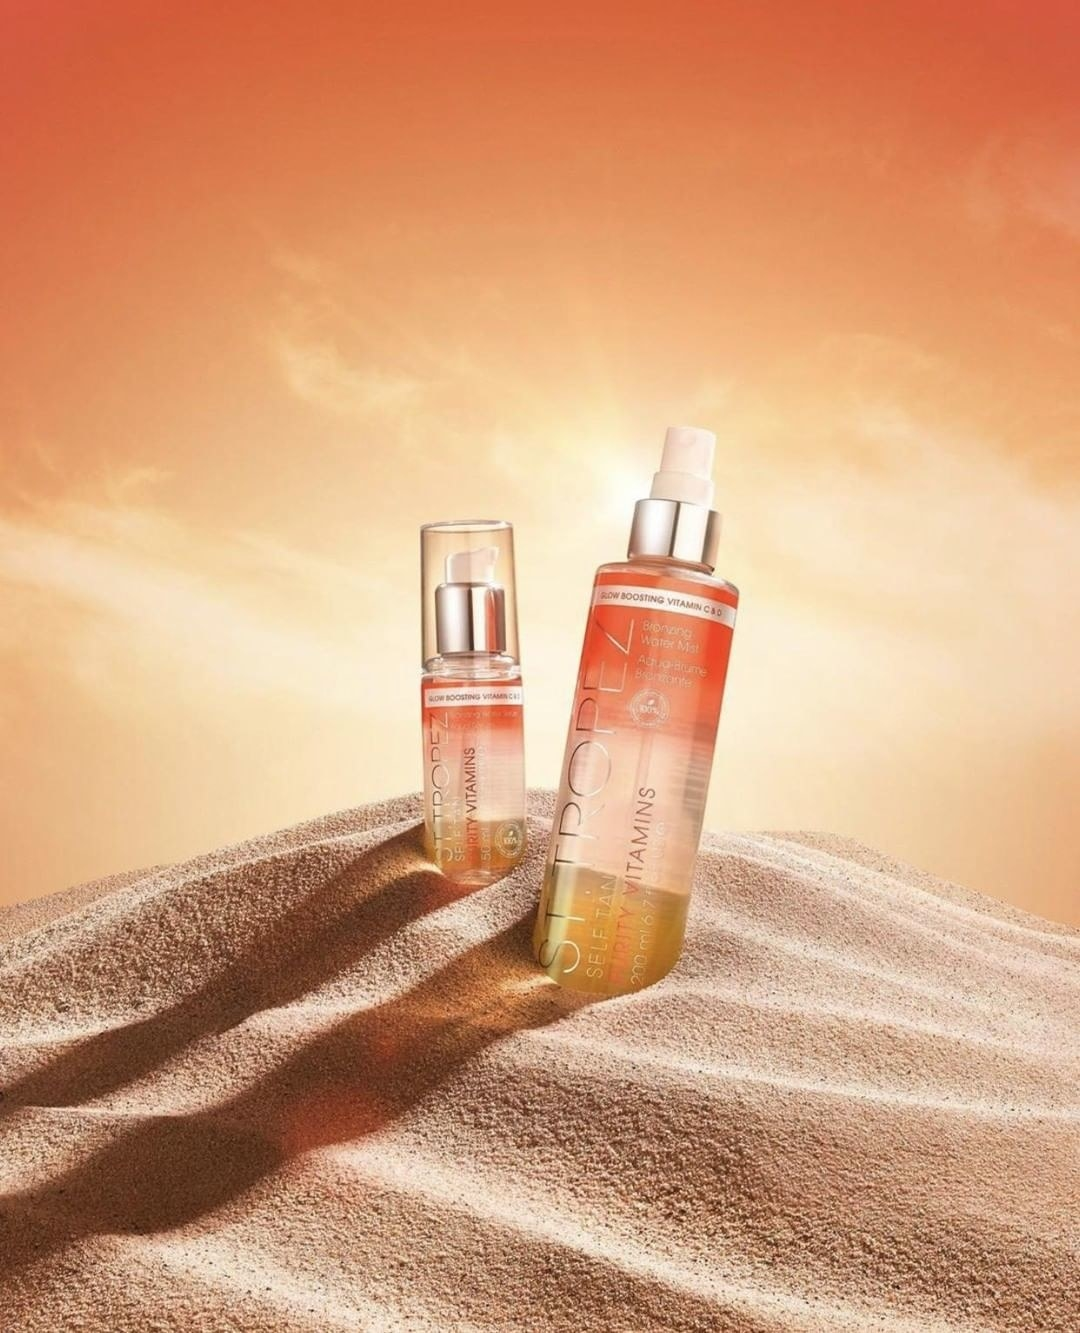 Two bottles of the Self Tan Purity Vitamins Bronzing Water Body Mist in a desert landscape